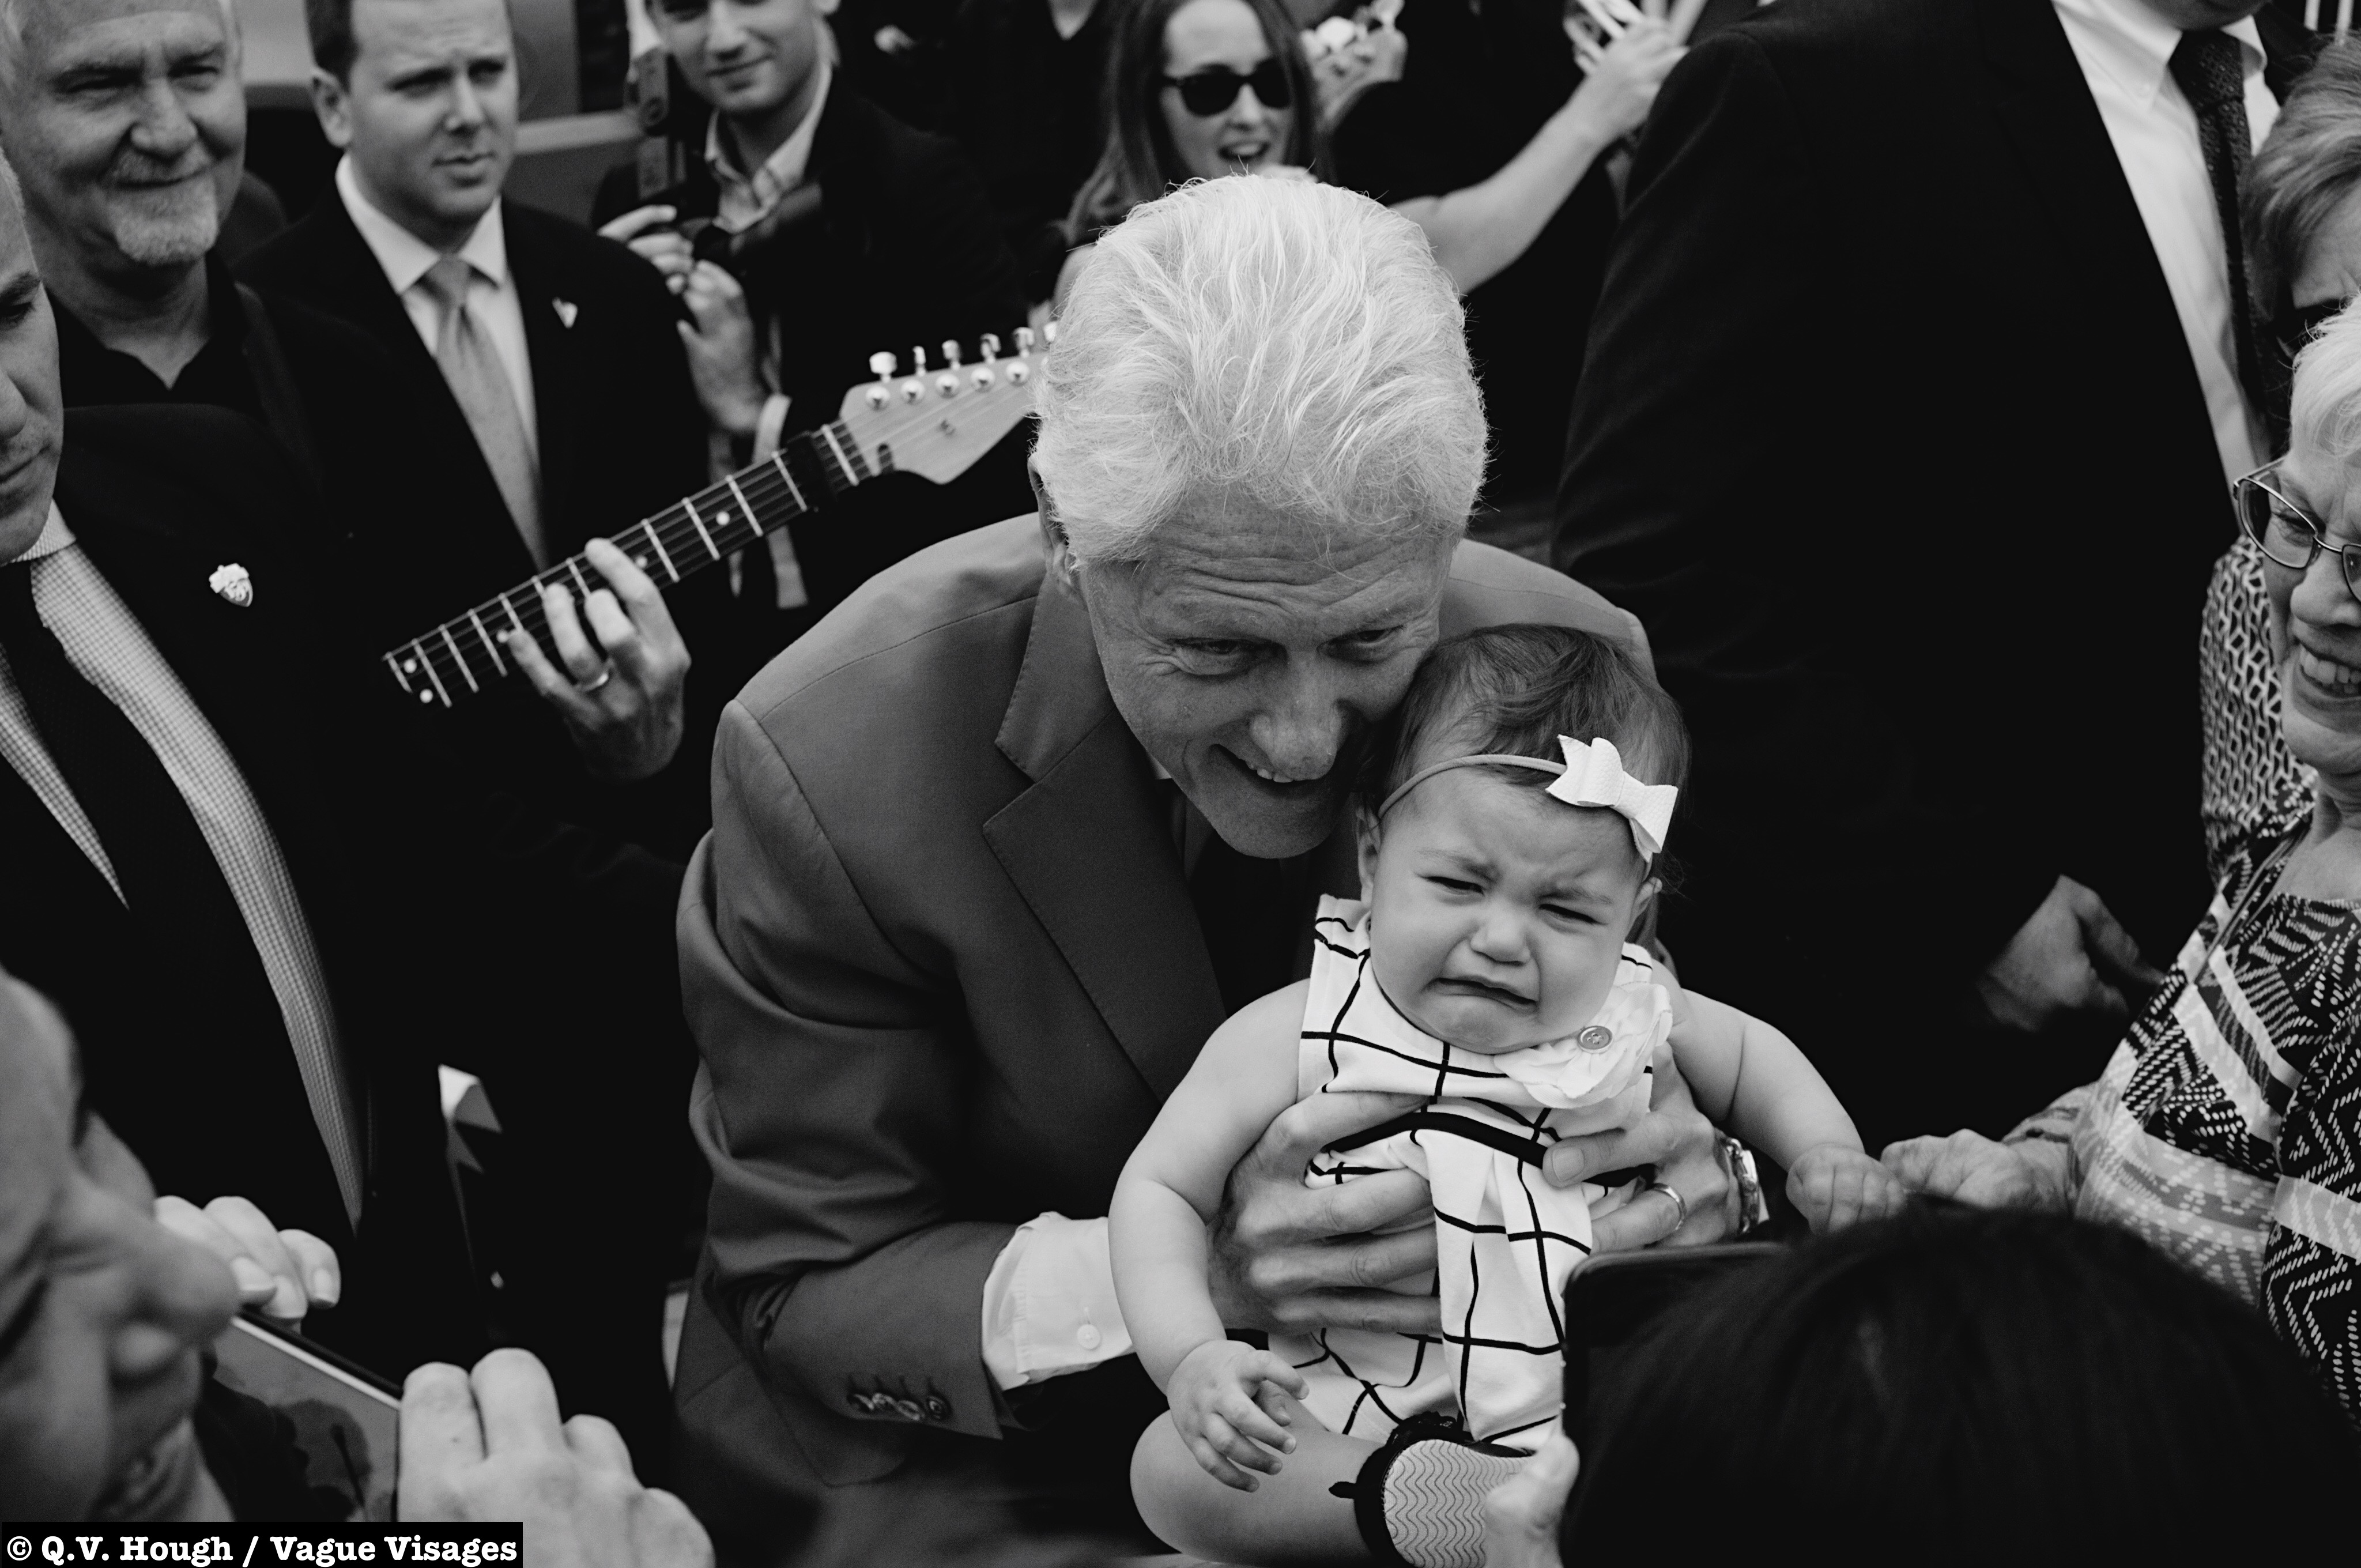 photo essay campaign trail bill clinton in fargo by q v photo essay campaign trail 2016 bill clinton in fargo by q v hough vague visages bull wave faces